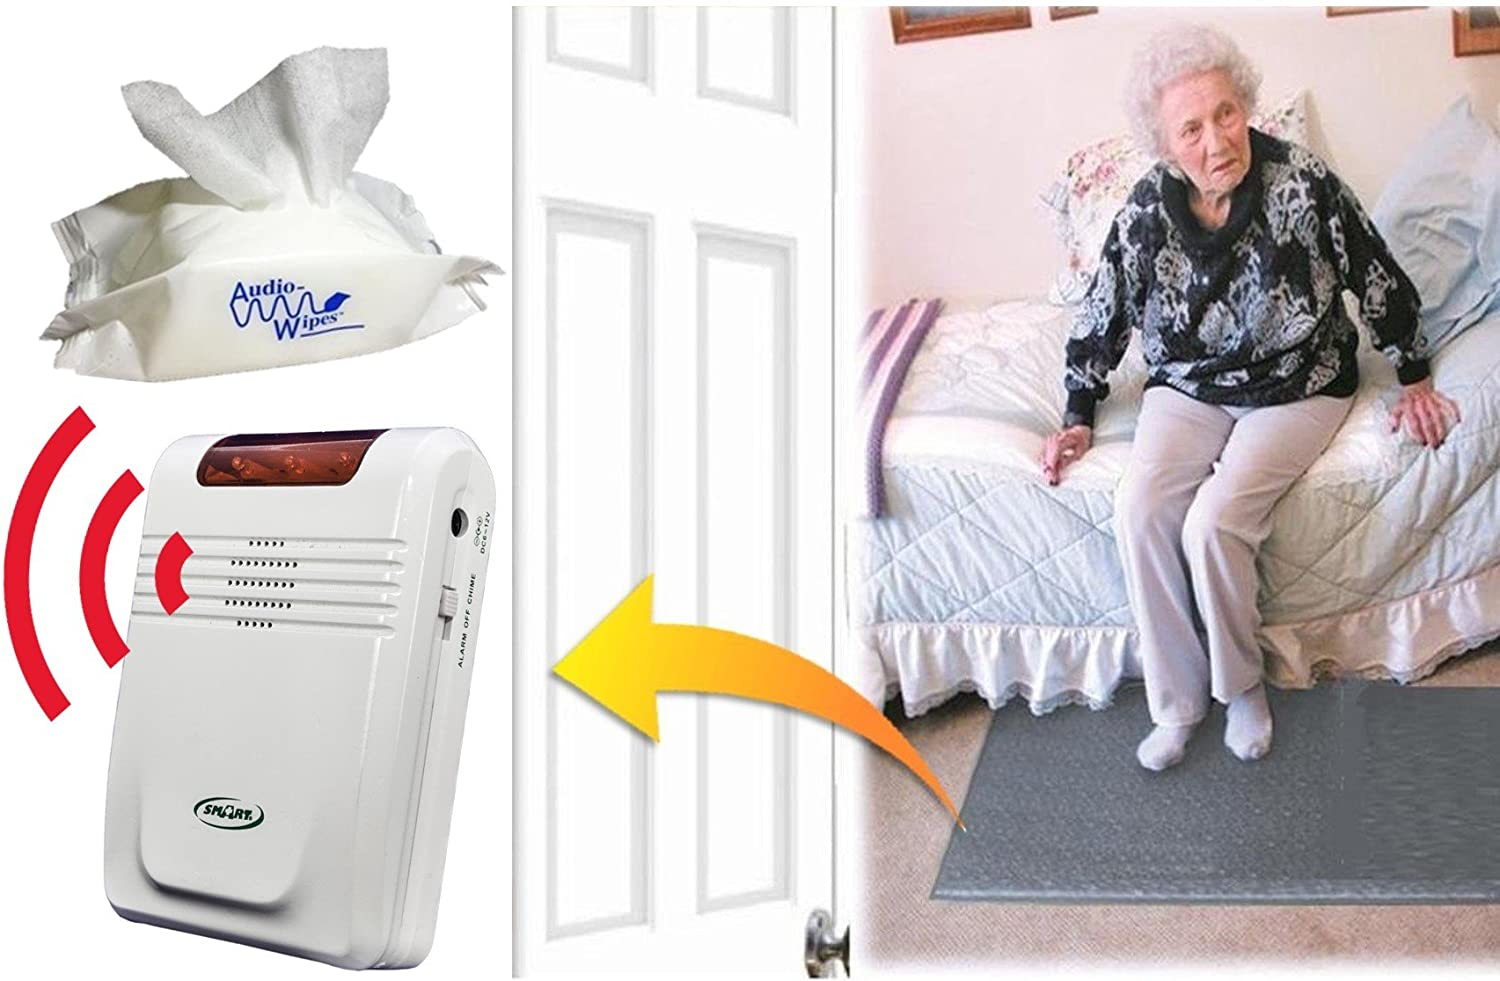 Smart Caregiver Economy Cordless Fall Monitor and Cordless Floor Mat Sensor Bundle with Pouch of 30 Cleaning Wipes